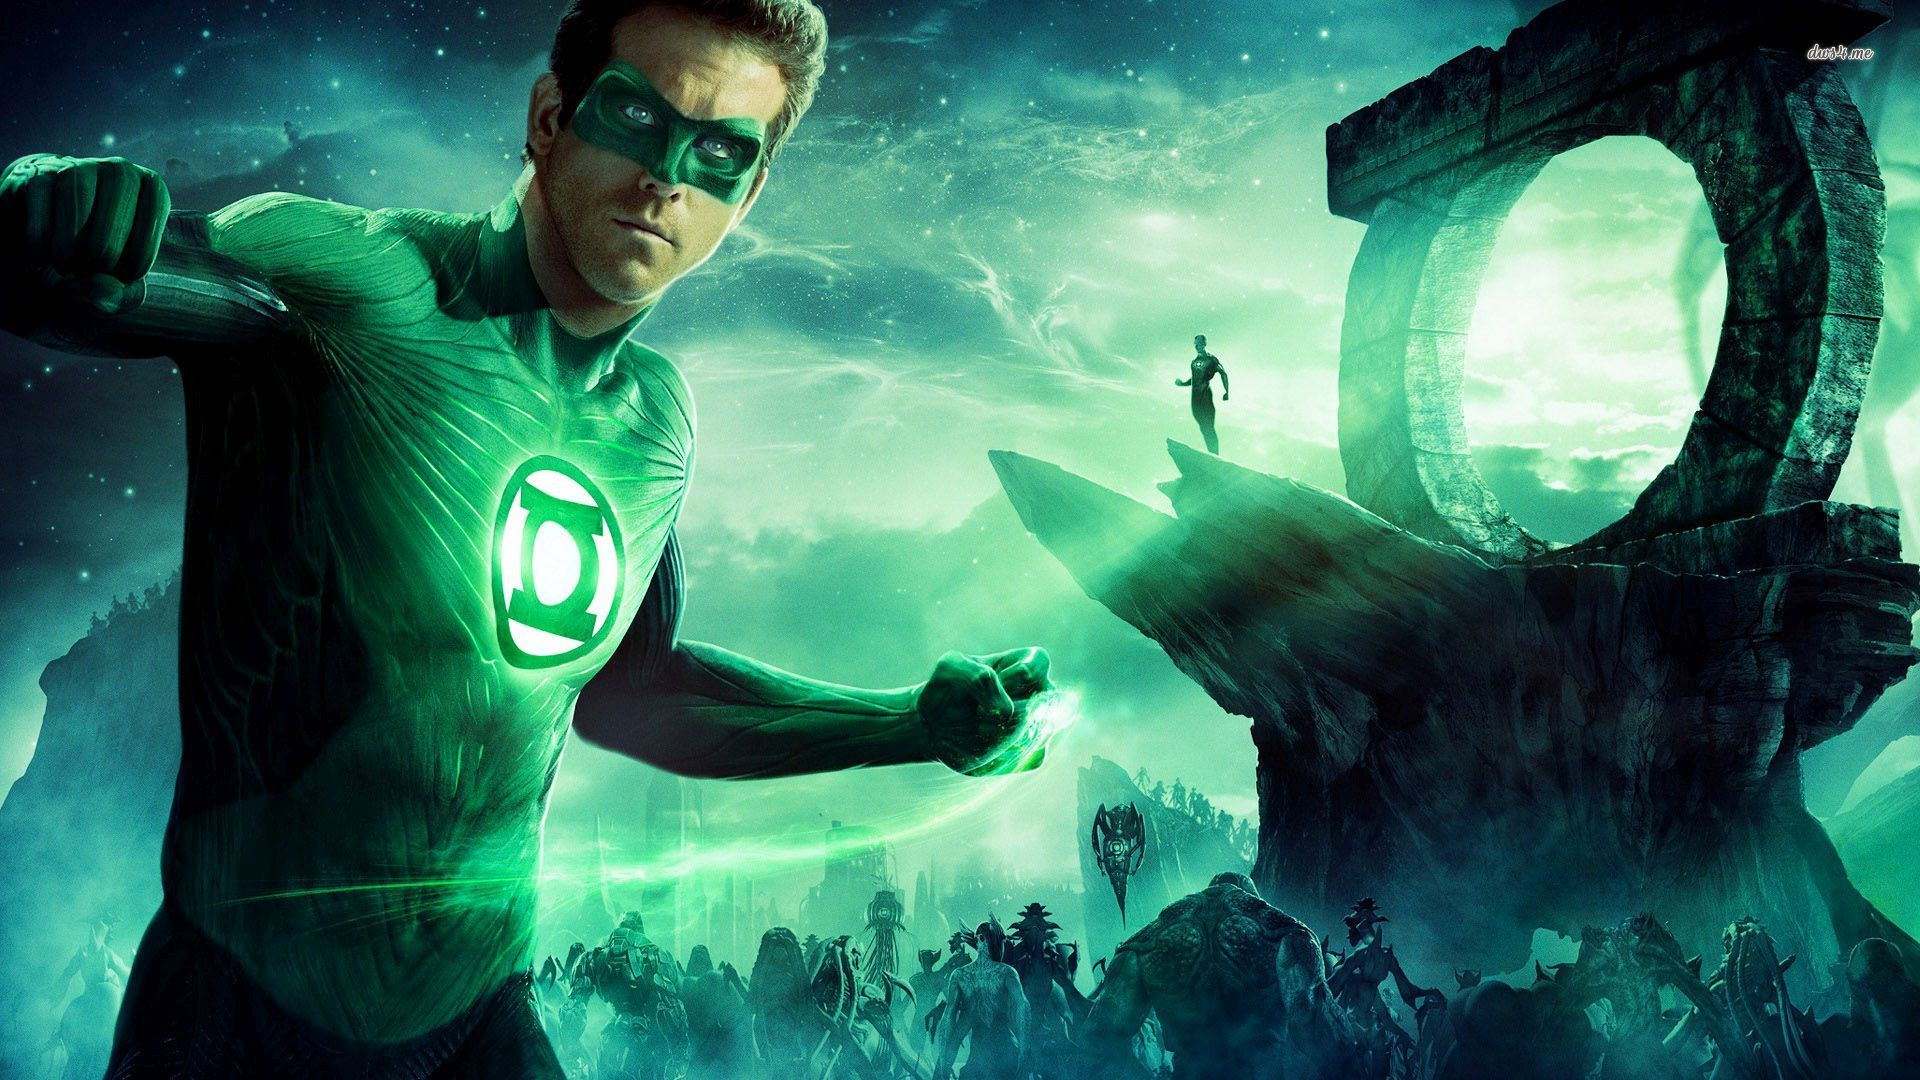 1920x1080px Green Lantern Movie Wallpapers 1920x1080